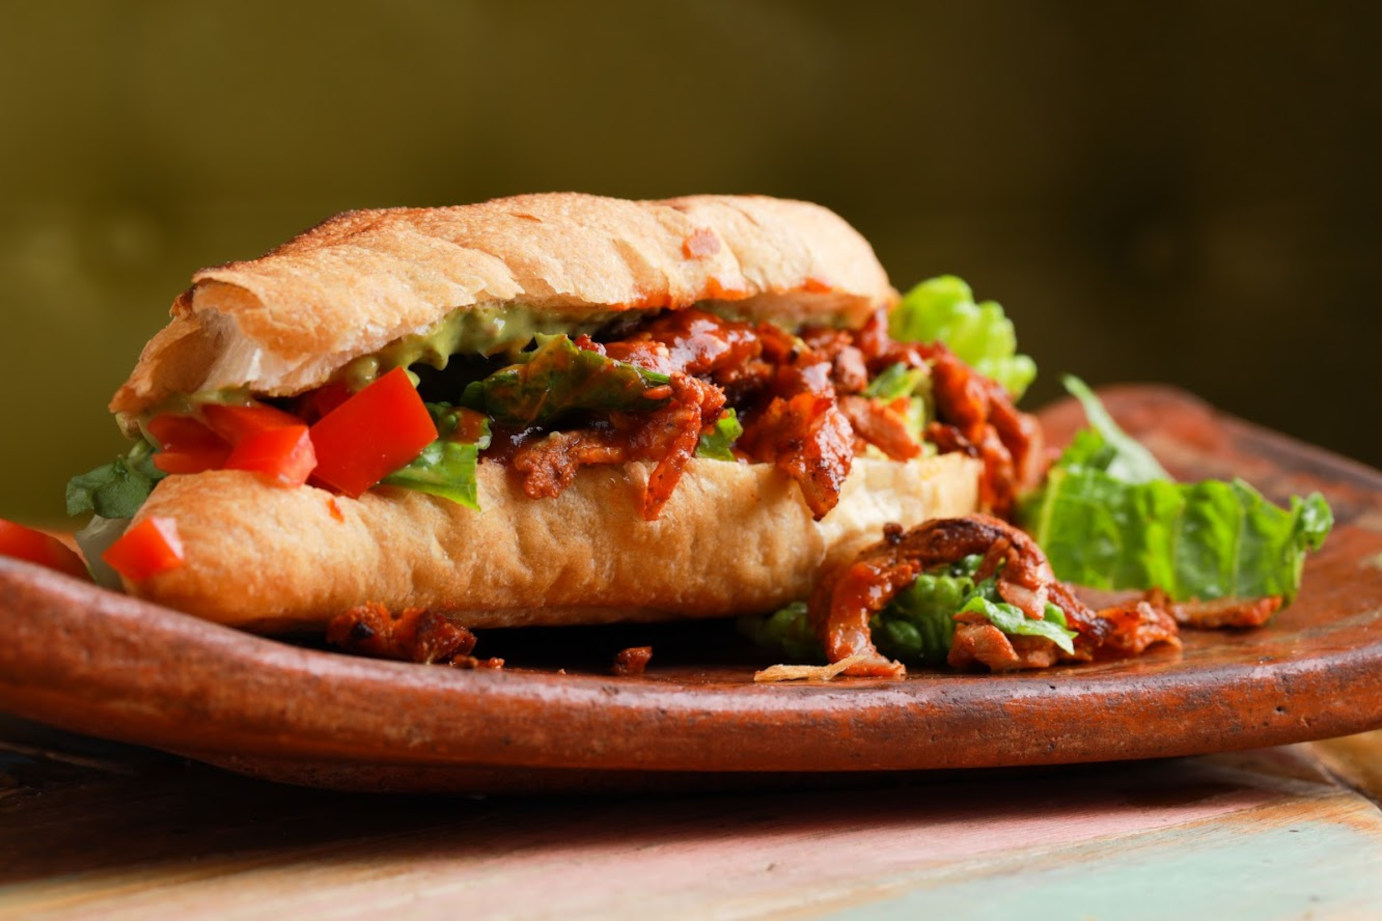 Sandwich with meat and mixed salad